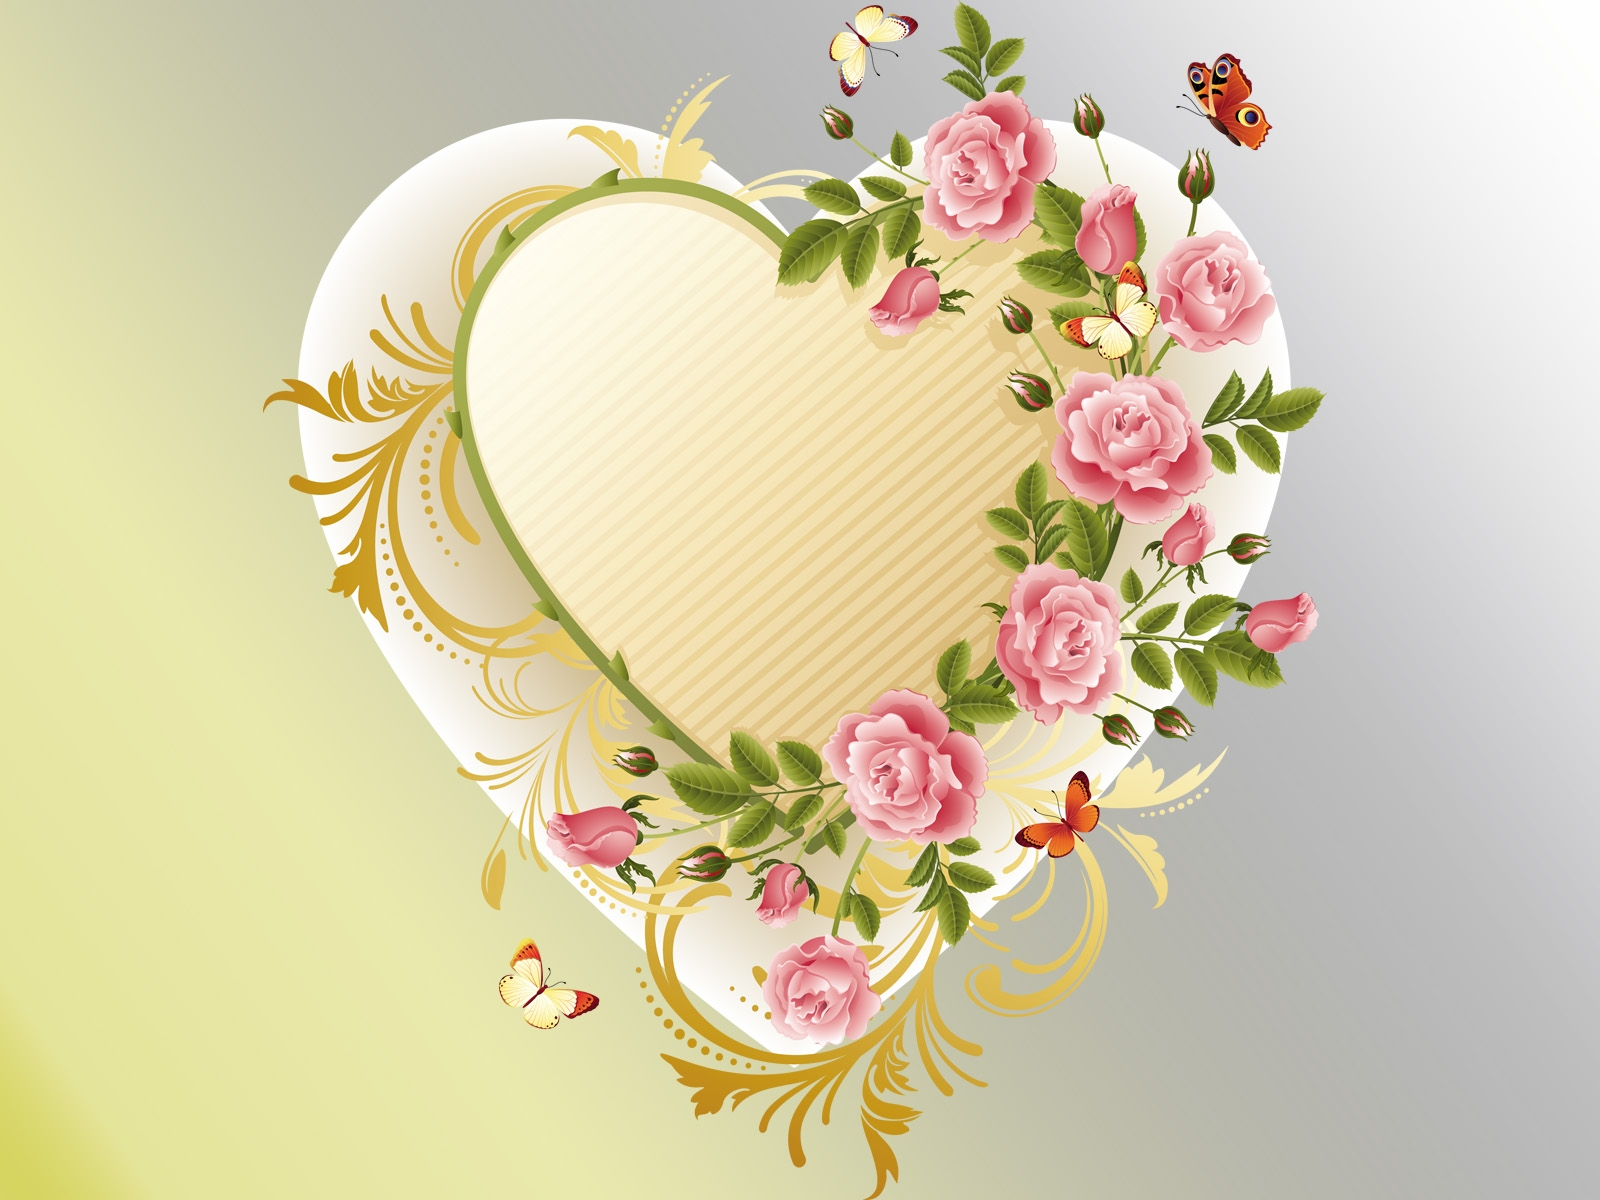 Cute Pink Glitter Wallpapers Awesome Heart Rose 10301 Hdwpro